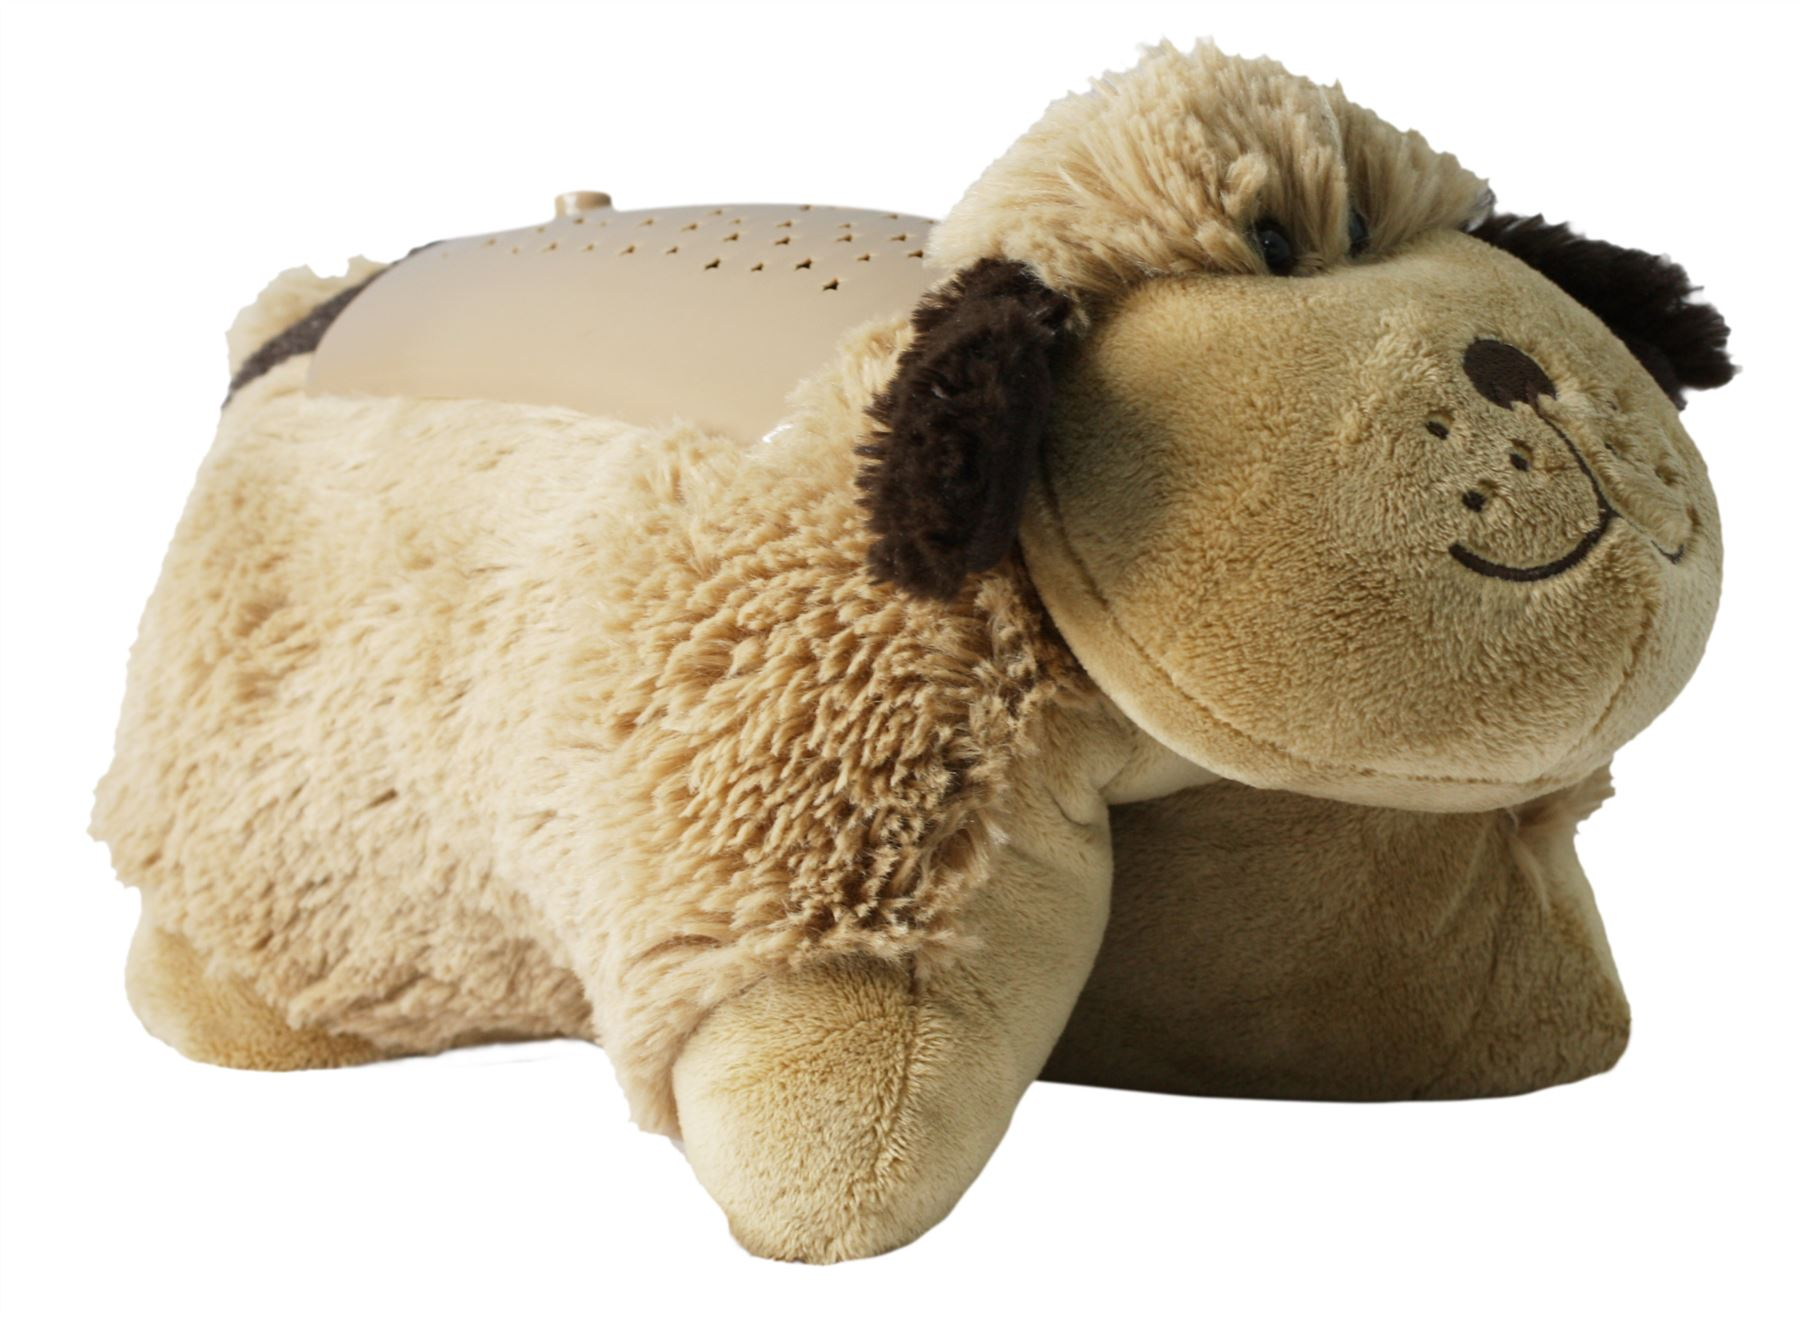 Animal Pillow Dream Lites : PILLOW PETS DREAM LITES CHILDRENS CUDDLE CUSHION ANIMAL NIGHT LIGHT LAMP TOY eBay